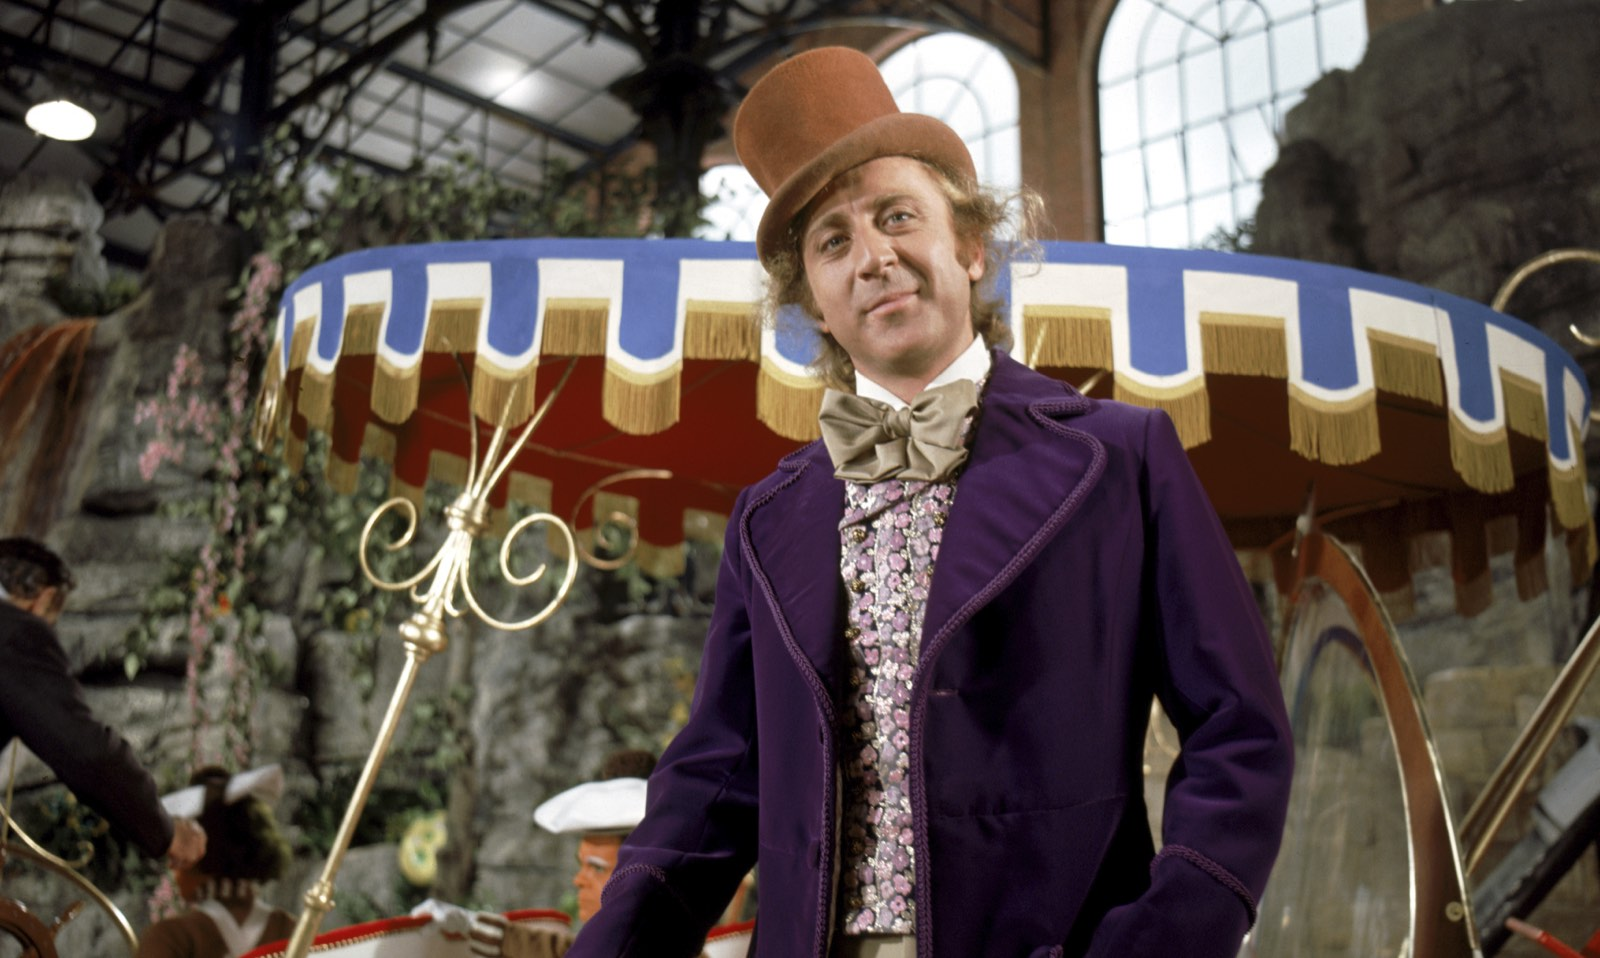 from-the-archive-willy-wonka-and-the-chocolate-factory.jpg